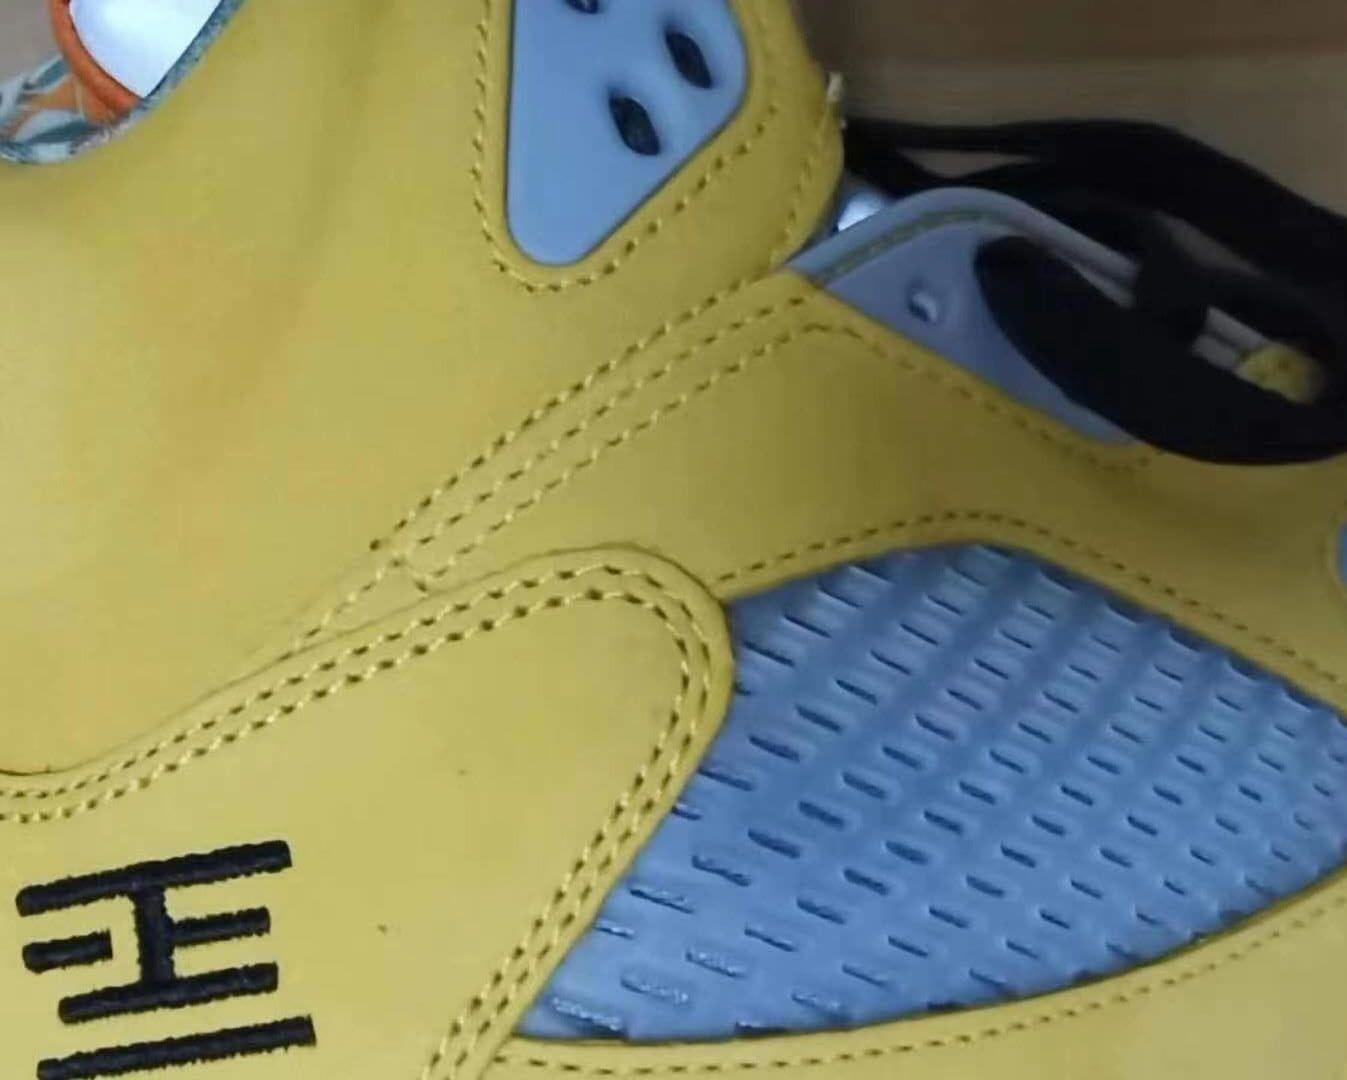 Air Jordan 5 Retro 'What The' First Look Lateral